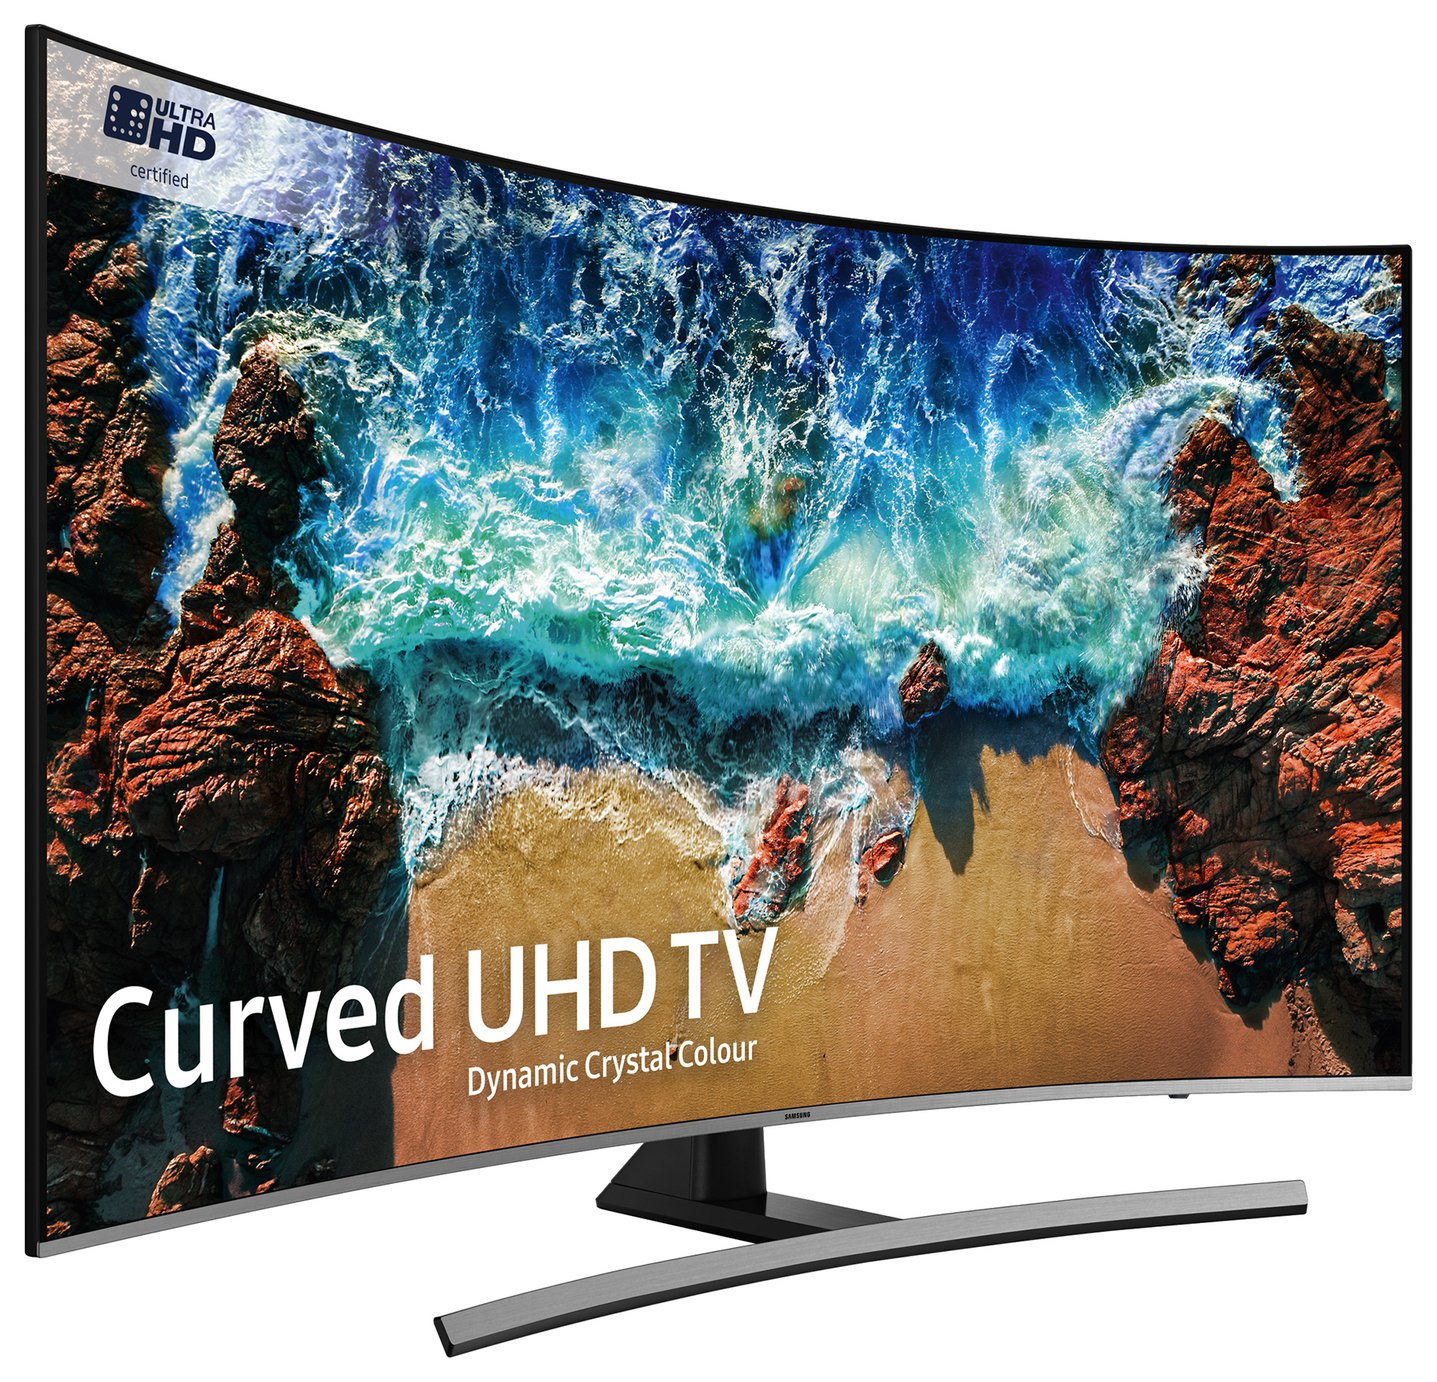 Samsung 55NU8500 55 Inch 4K UHD Curved Smart TV with HDR